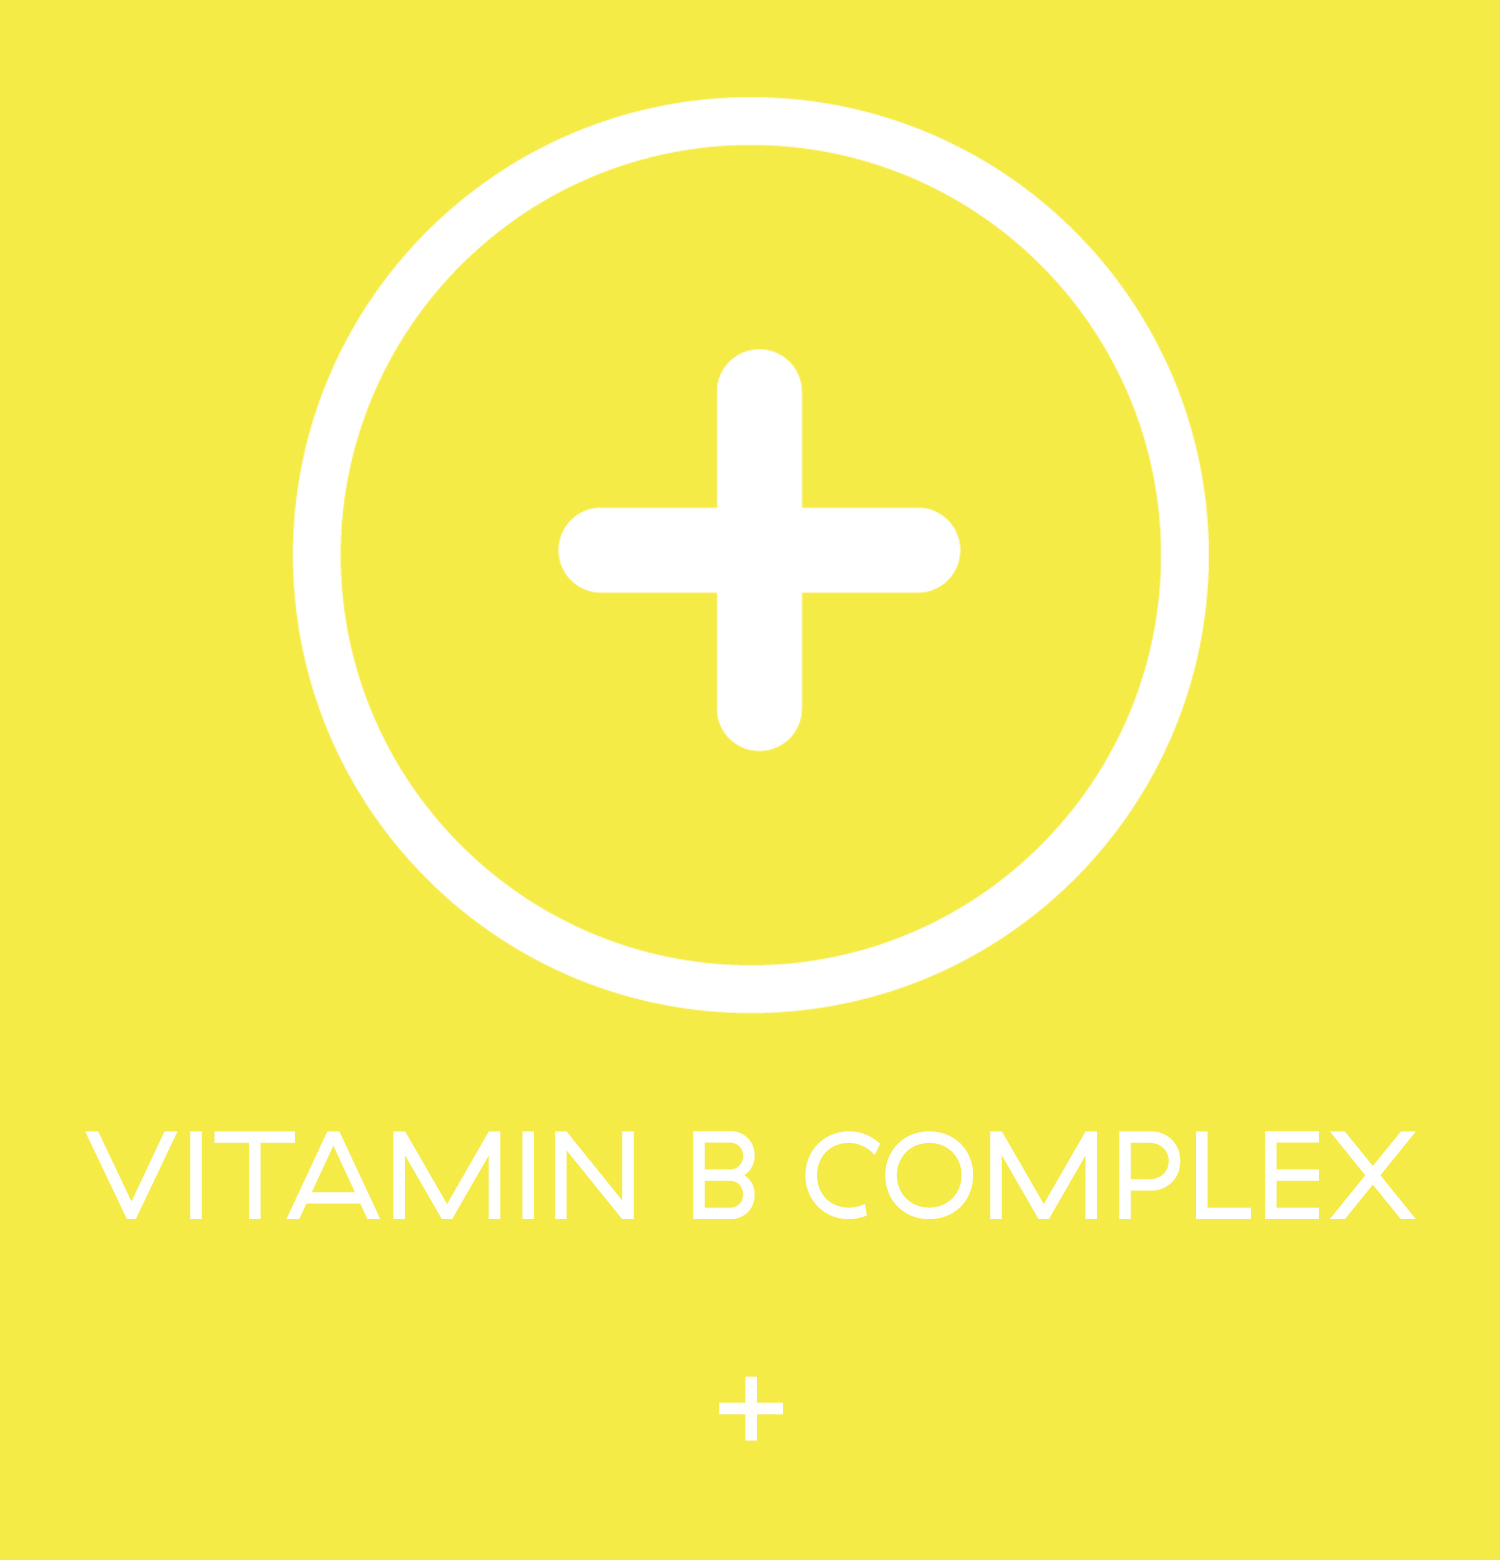 Vitamin B Complex - here is where you start talking about it